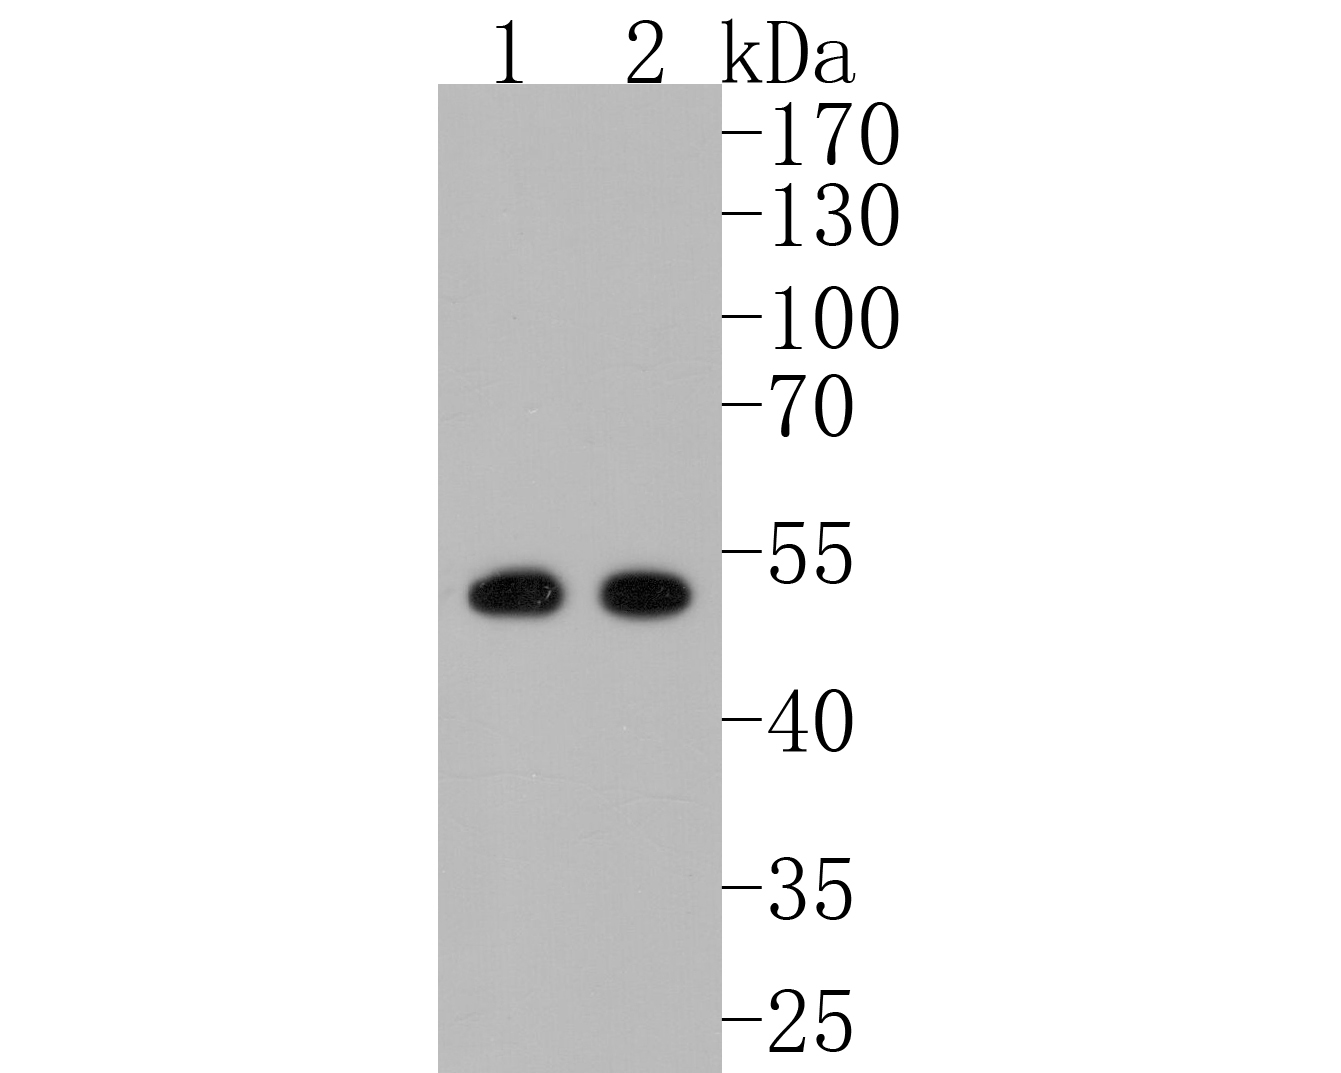 Western blot analysis of PICK1 on different lysates. Proteins were transferred to a PVDF membrane and blocked with 5% BSA in PBS for 1 hour at room temperature. The primary antibody (ET7108-60, 1/500) was used in 5% BSA at room temperature for 2 hours. Goat Anti-Rabbit IgG - HRP Secondary Antibody (HA1001) at 1:5,000 dilution was used for 1 hour at room temperature.<br /> Positive control: <br /> Lane 1: SK-Br-3 cell lysate<br /> Lane 2: 293 cell lysate